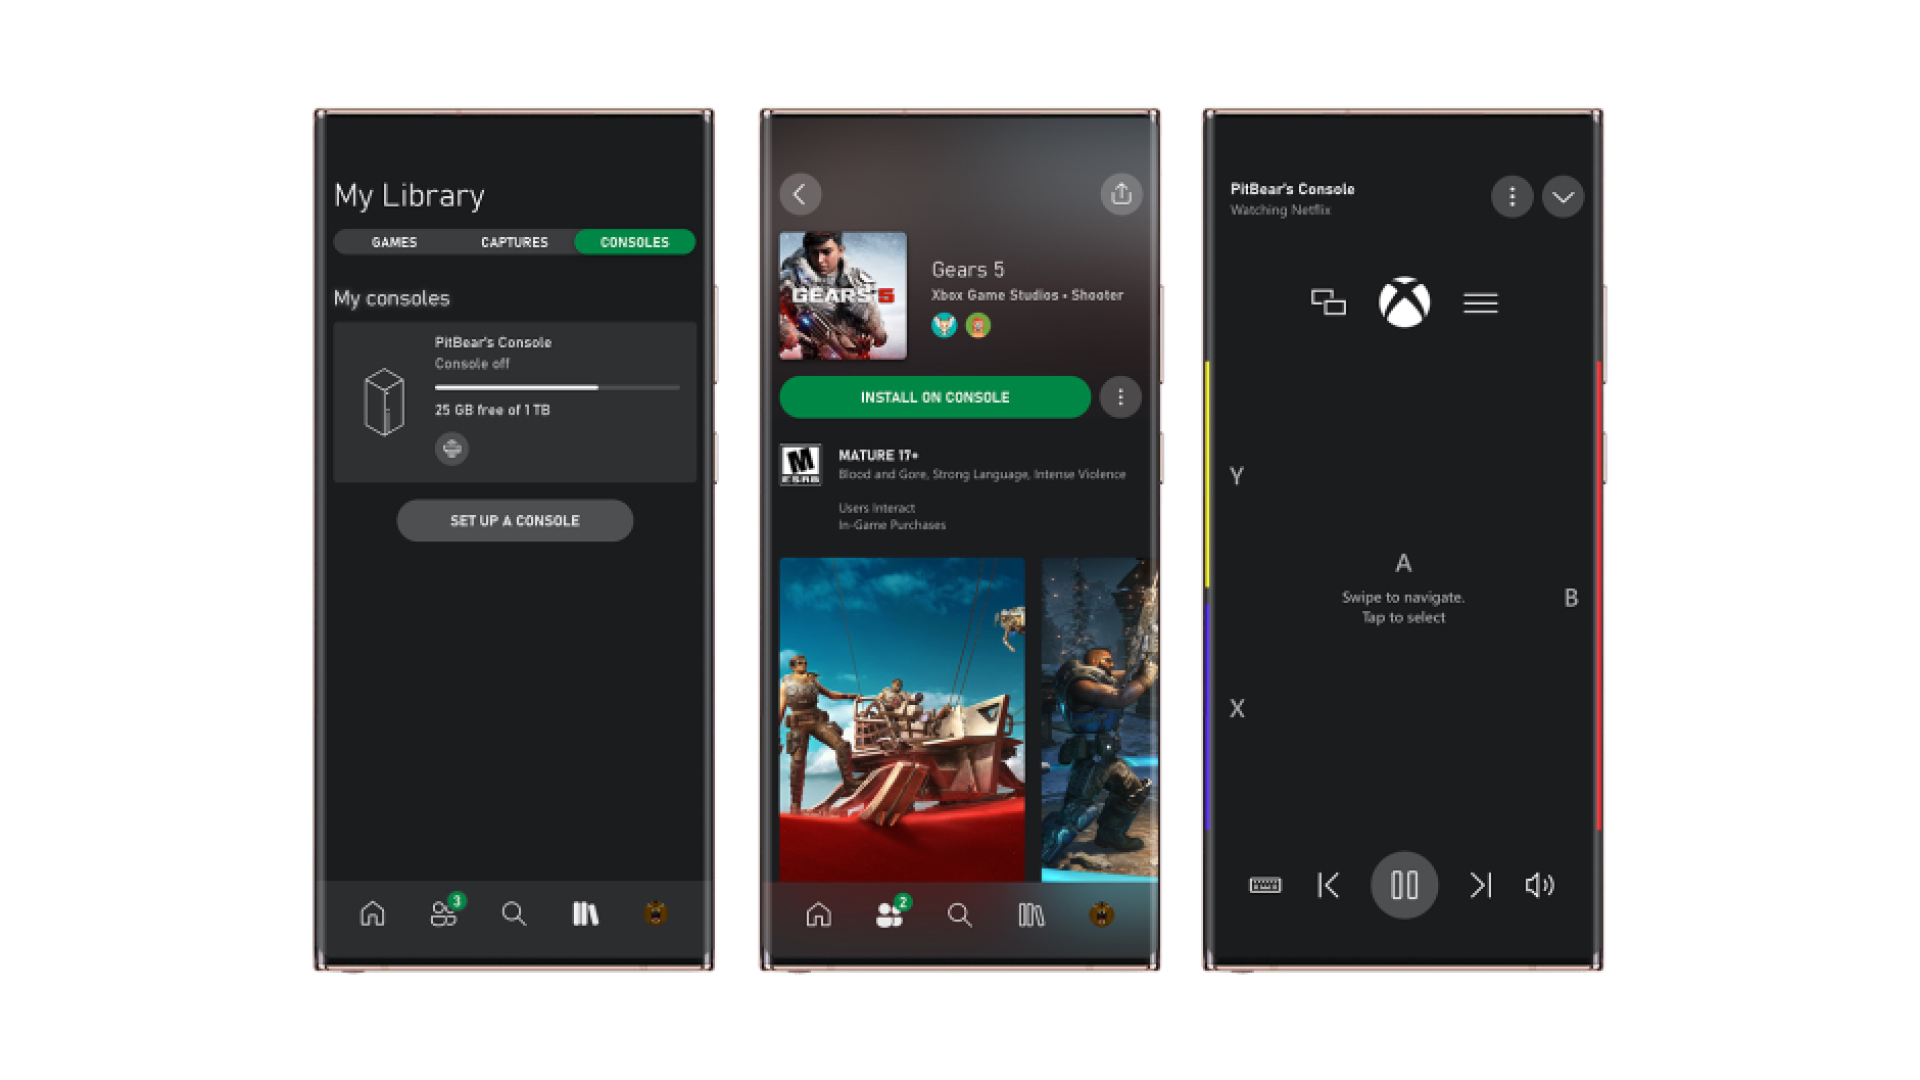 New Xbox App (Beta) on Mobile now available on Android and iOS Xbox-Mobile-App_Remote-game-management.jpg